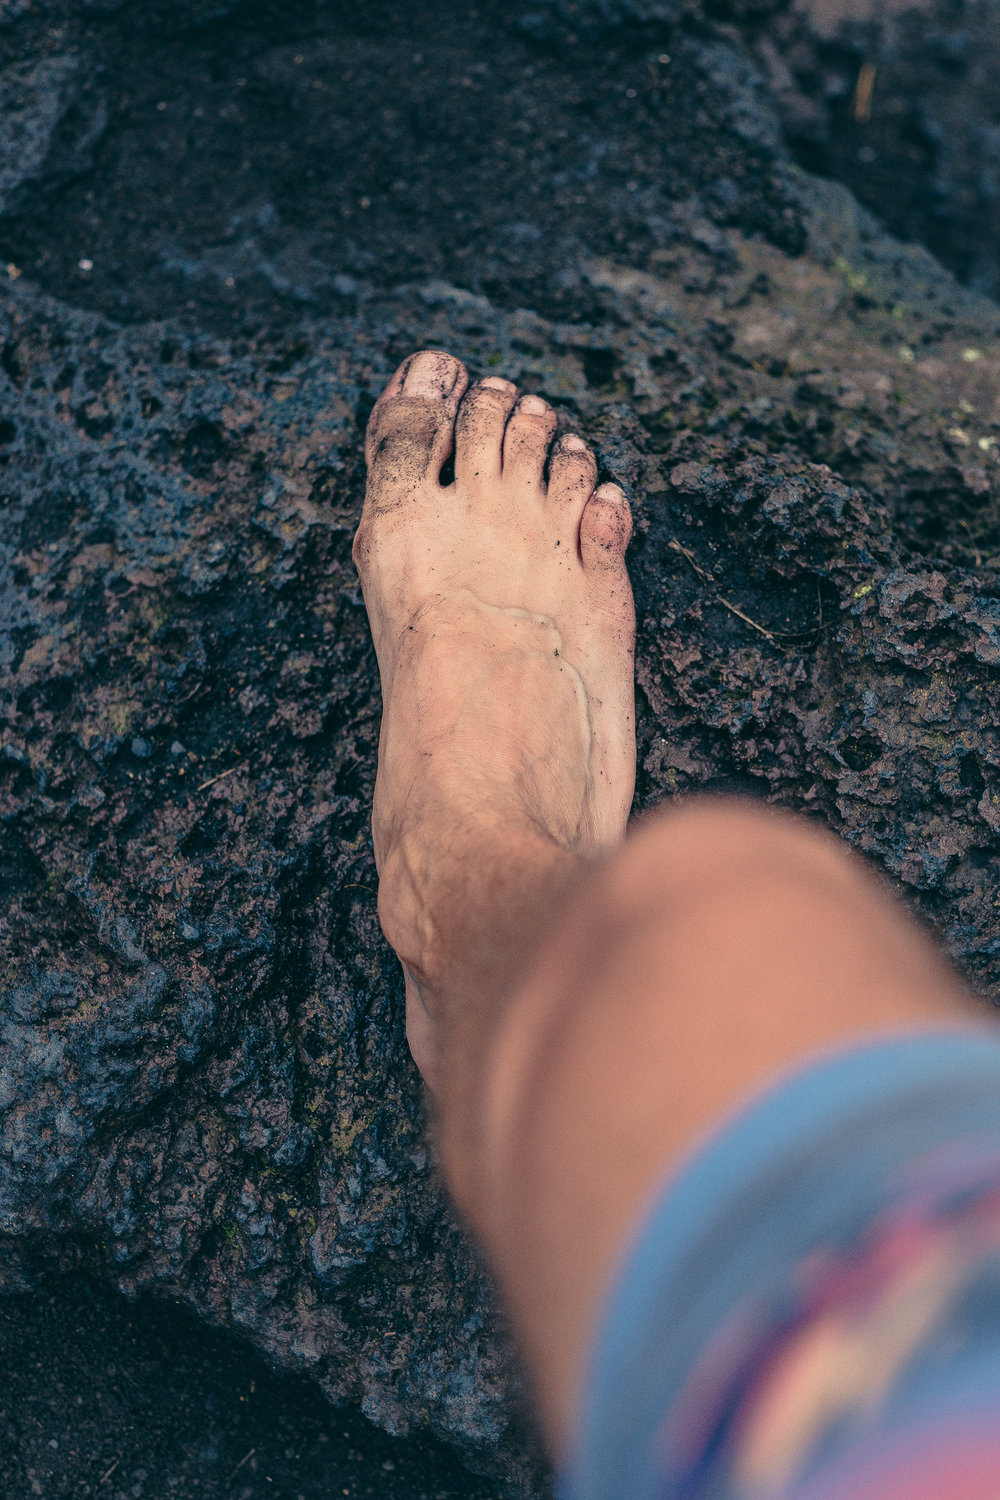 Climbing Mt. Batur, up and down barefoot